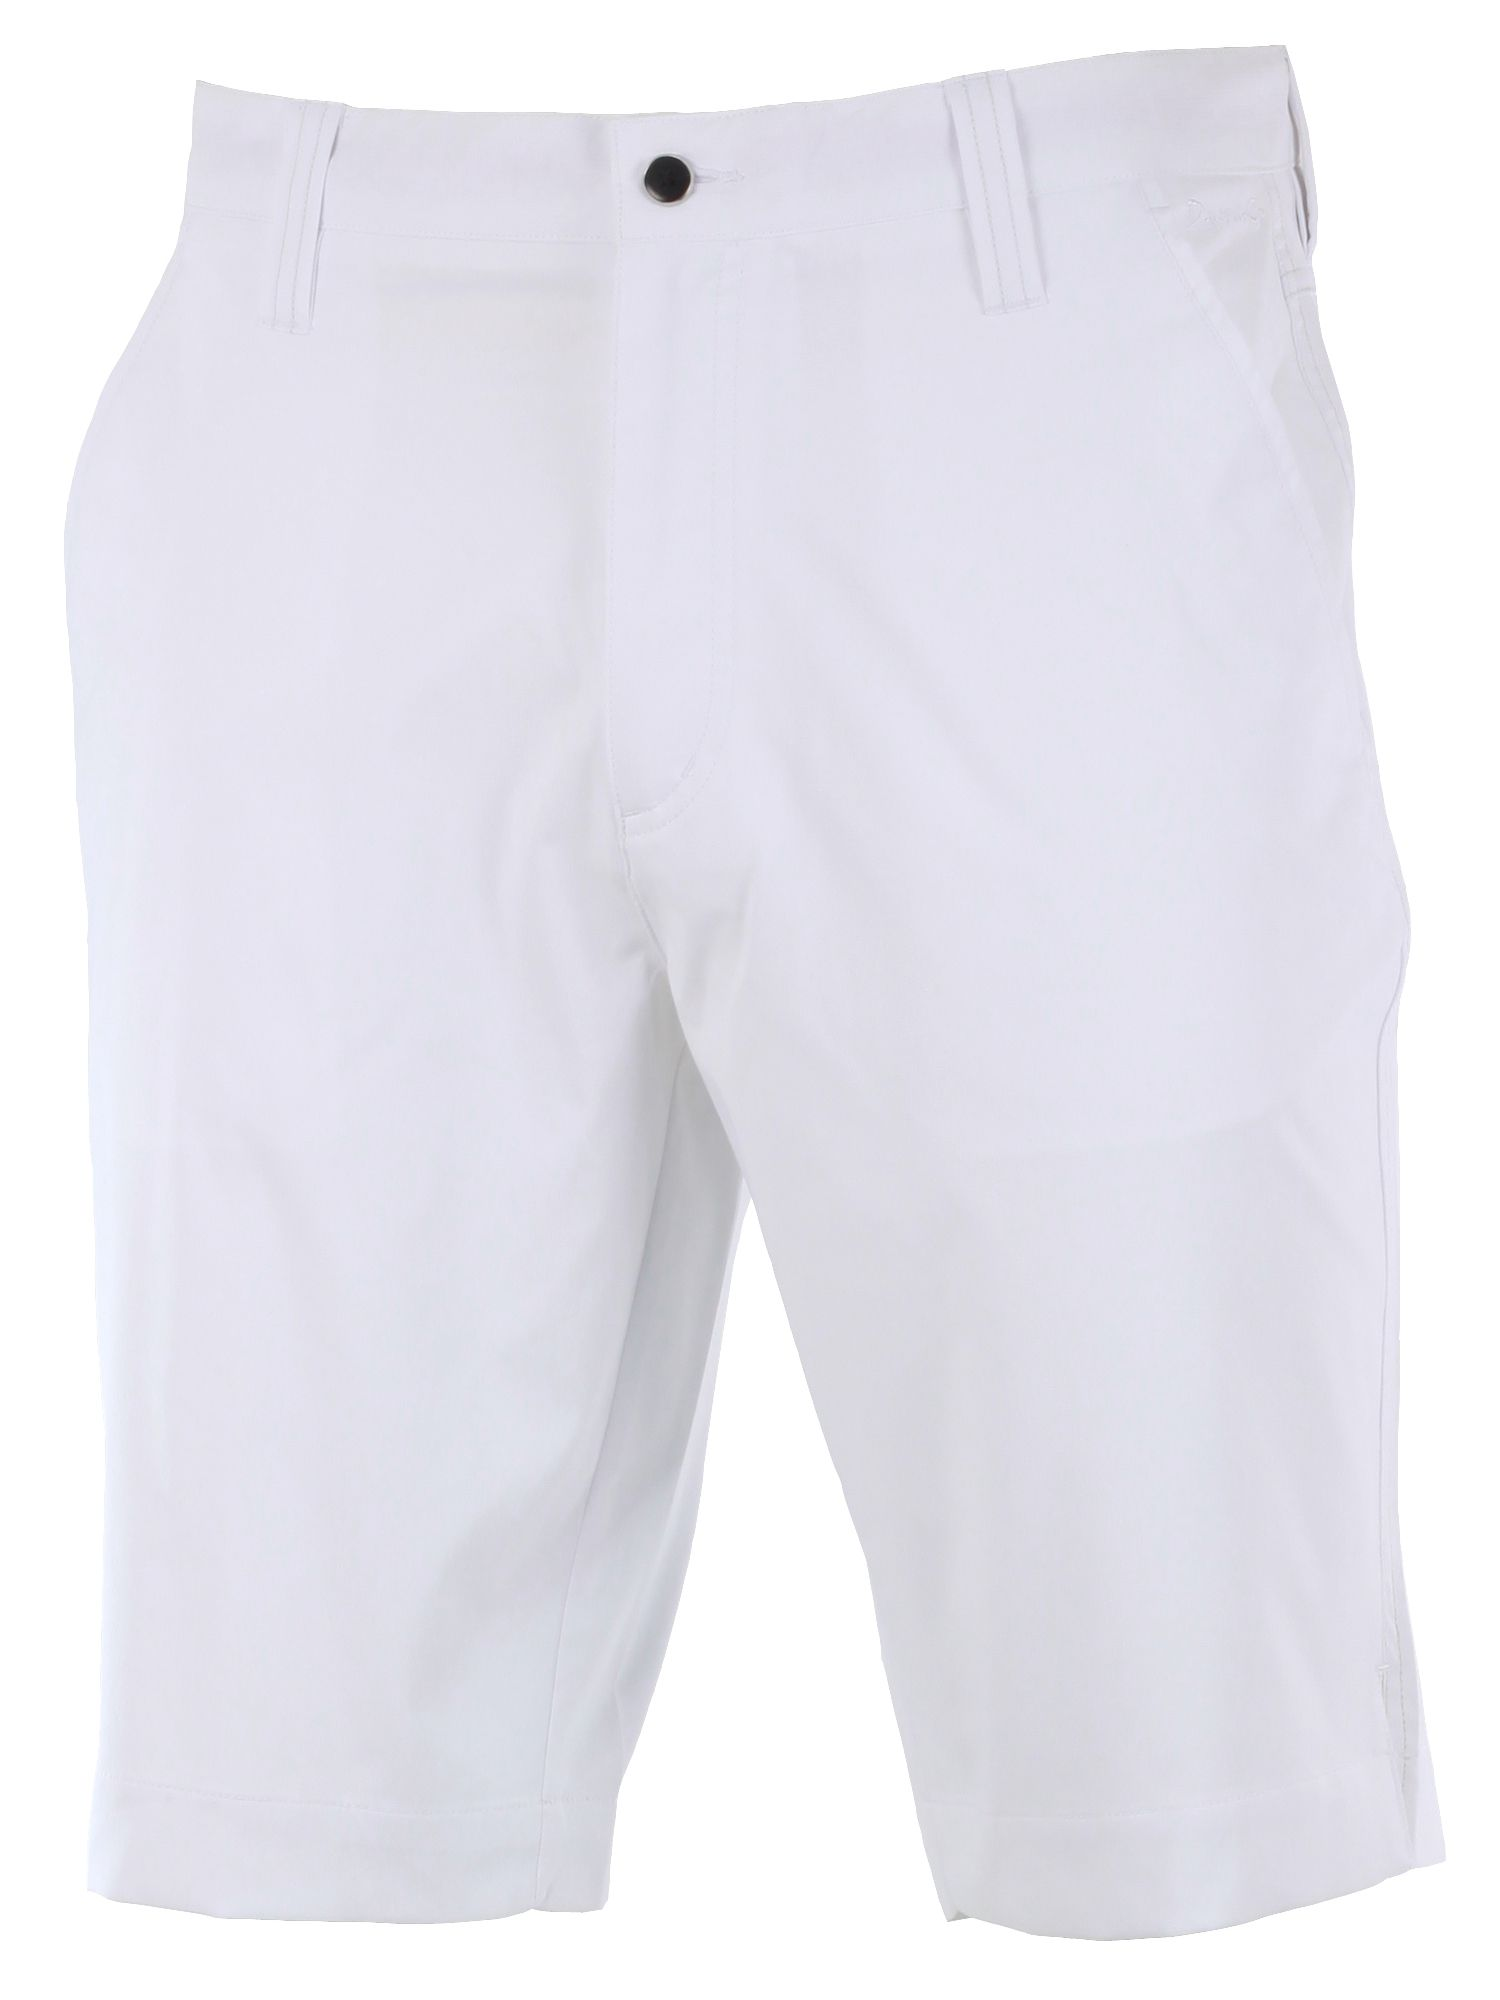 Dwyers and Co Men's Dwyers and Co Micro Tech 2.0 shorts, White